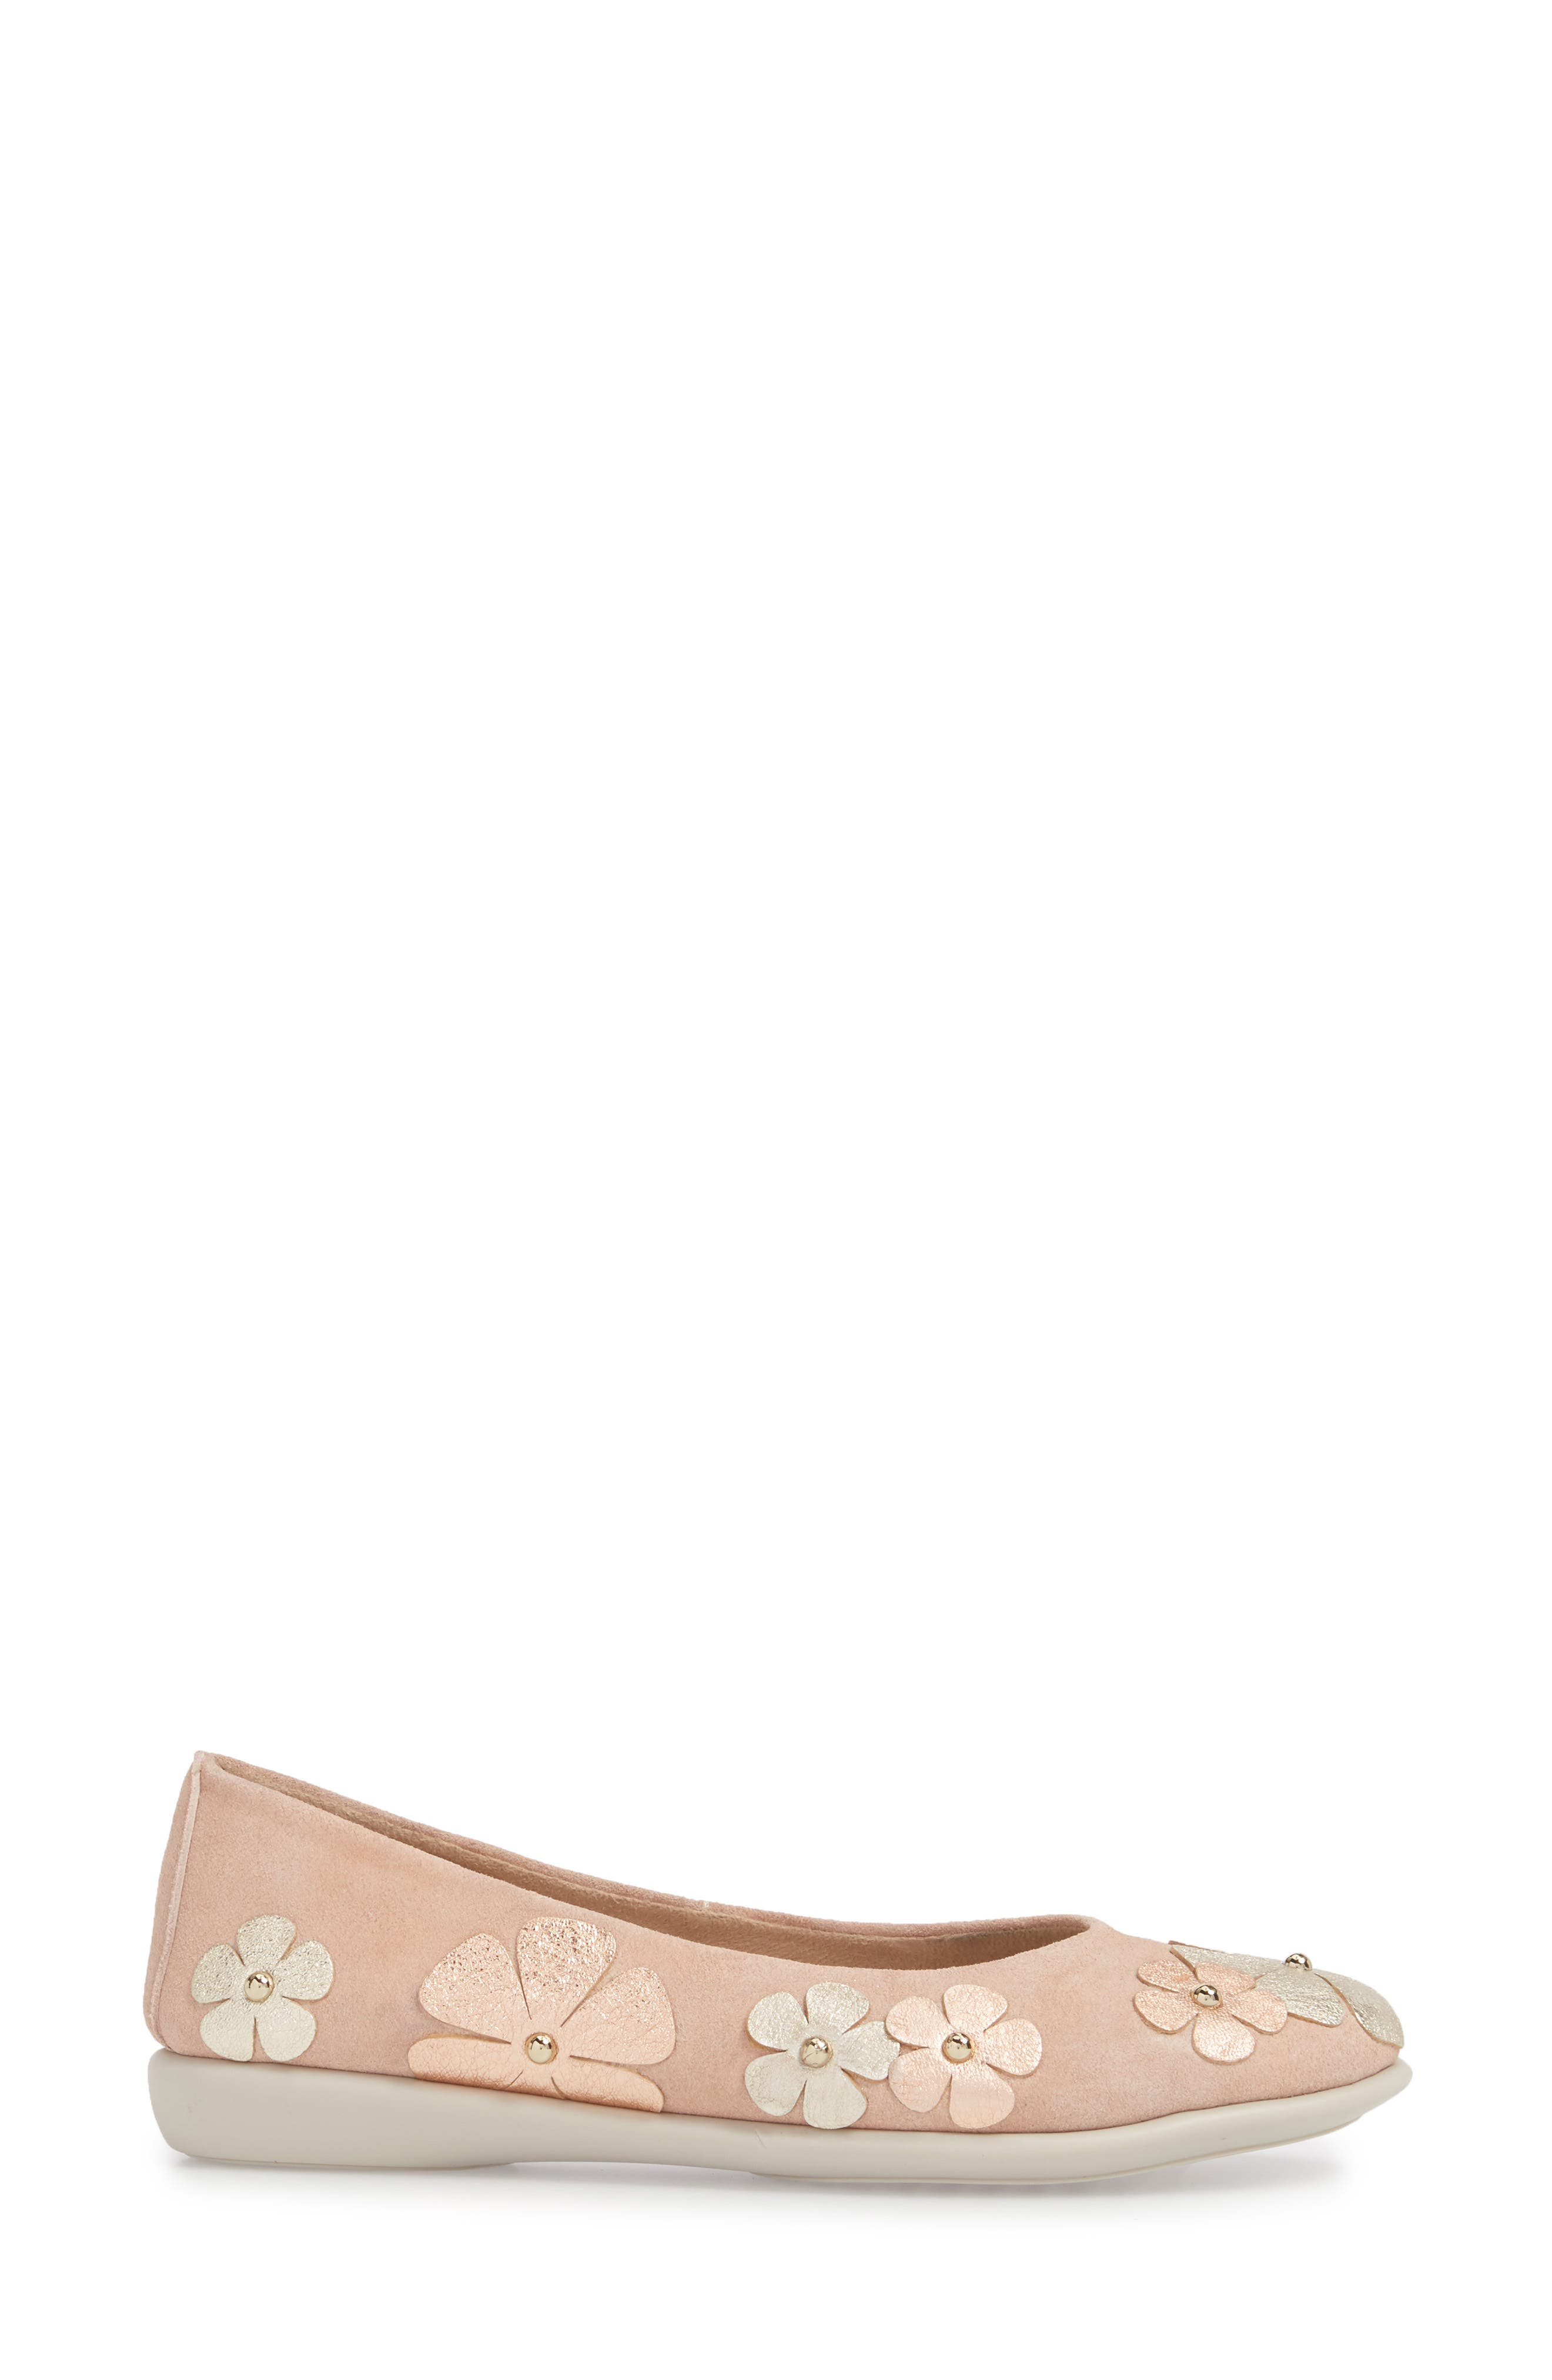 Miss Hippie Ballerina Flat,                             Alternate thumbnail 3, color,                             ROSE GOLD LEATHER